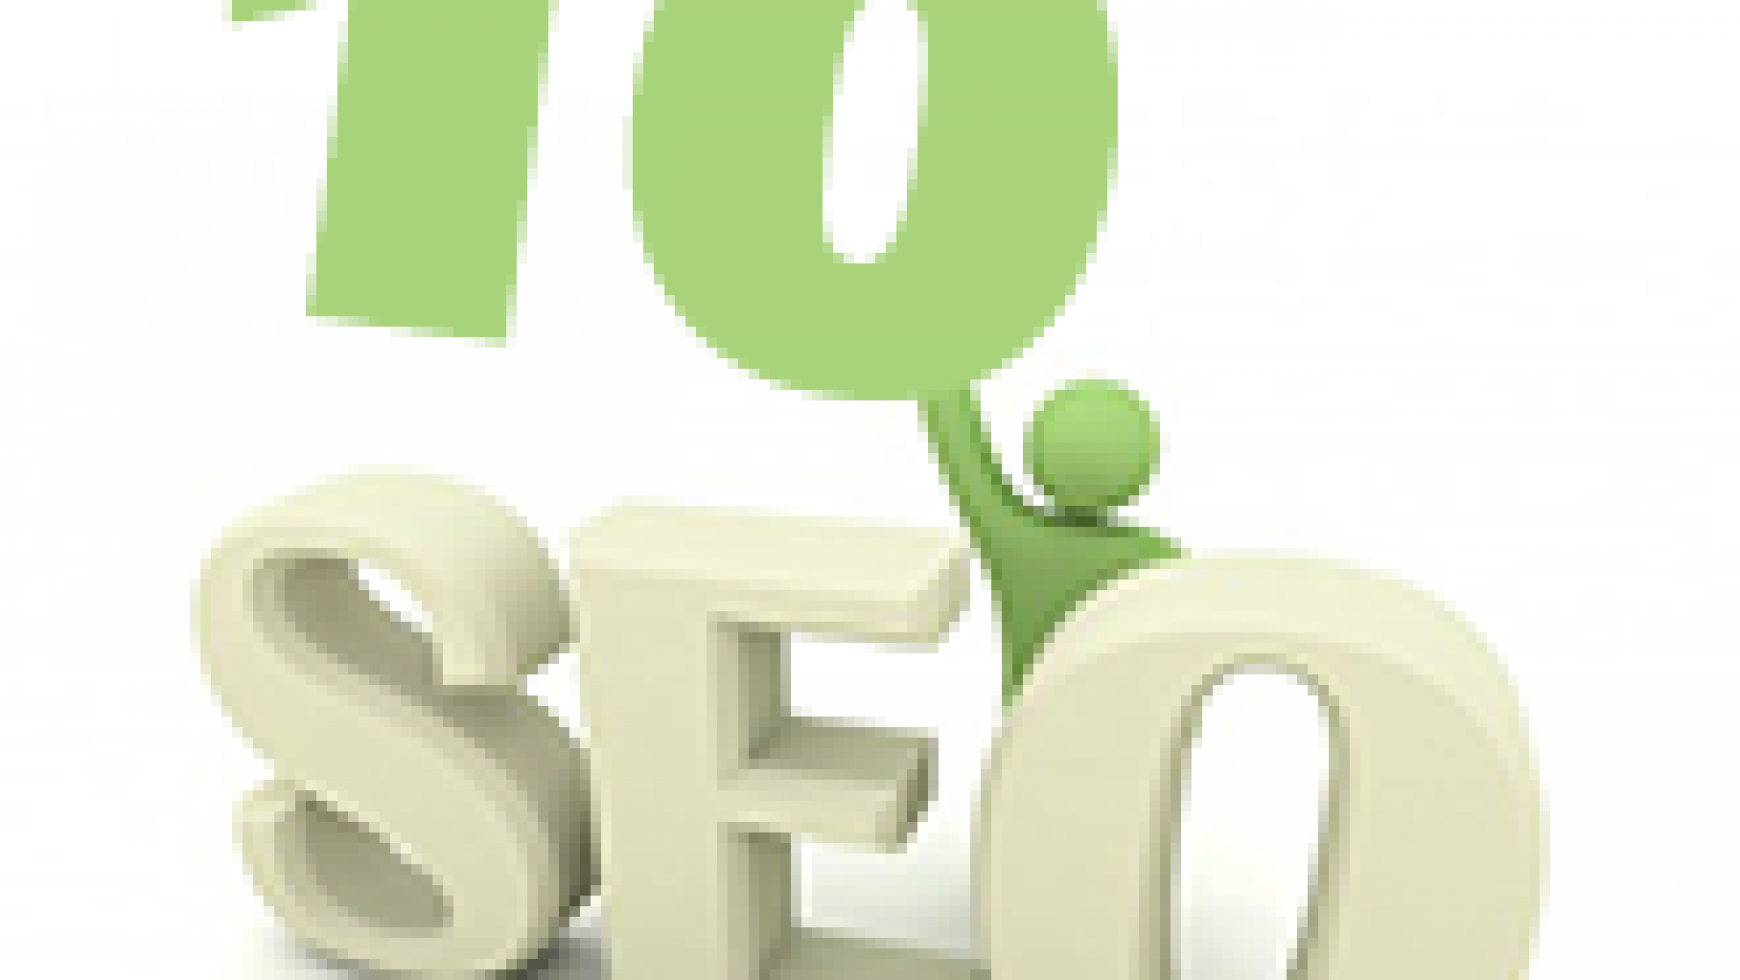 10 FUNDAMENTAL QUESTIONS TO ASK YOUR SEO CLIENTS